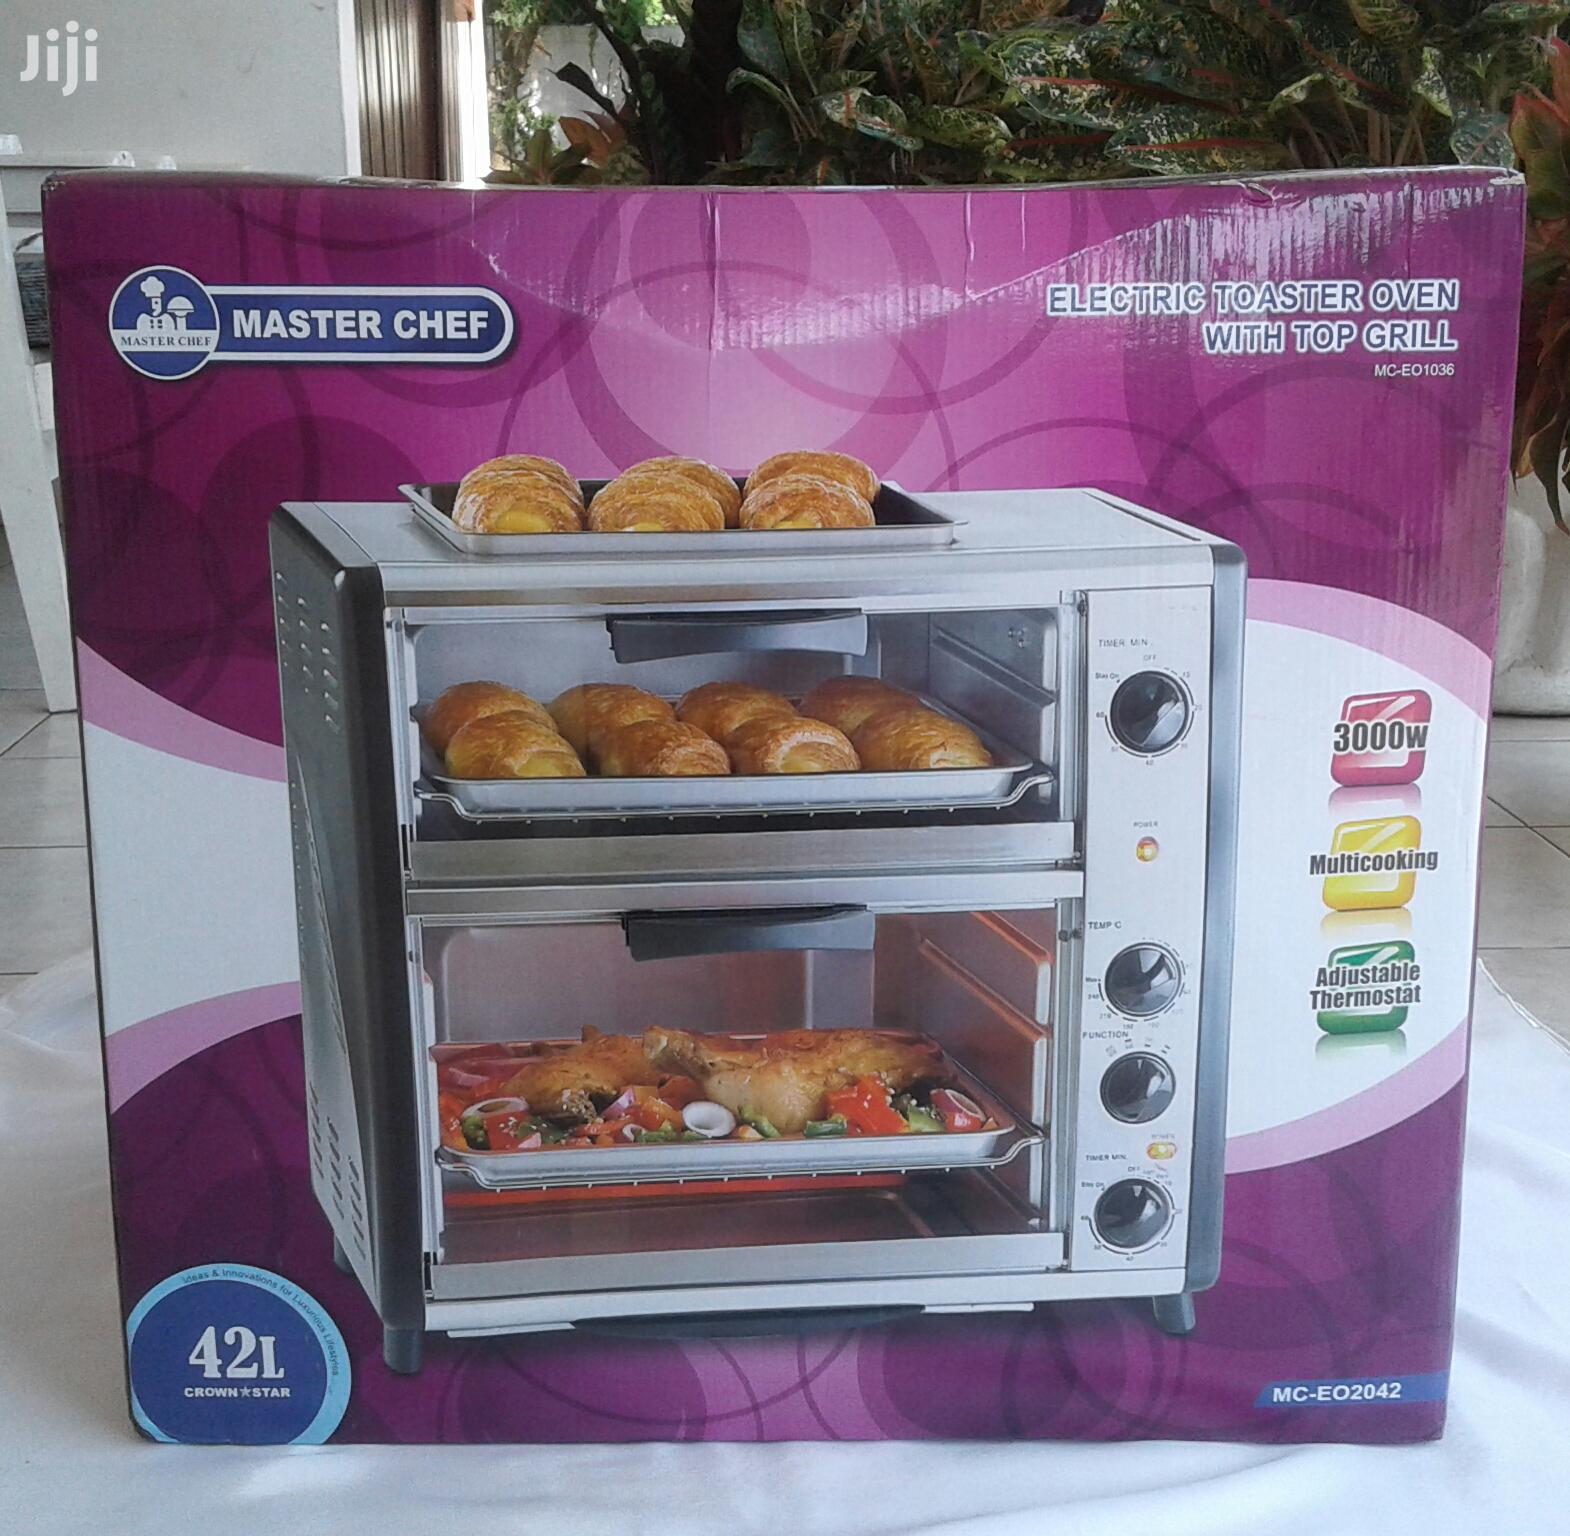 Archive: Master Chef Electric Toaster-oven With Top Grill